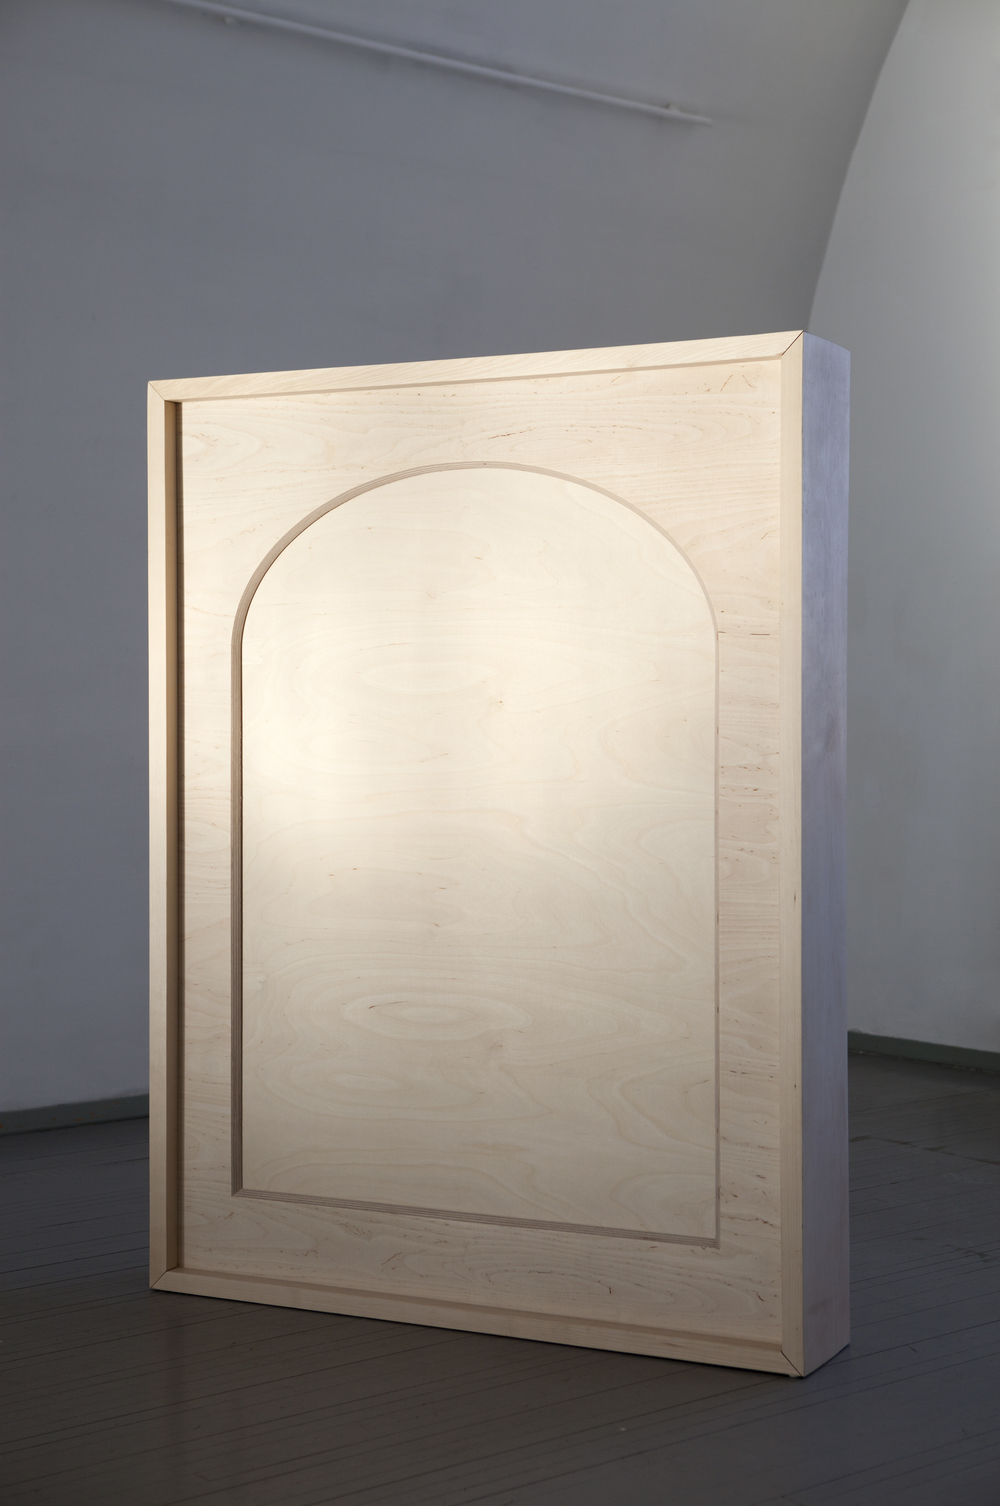 Tanja Koljonen, Sentiment (2015), Sculpture, wood, 135 cm x 105 x 20 cm